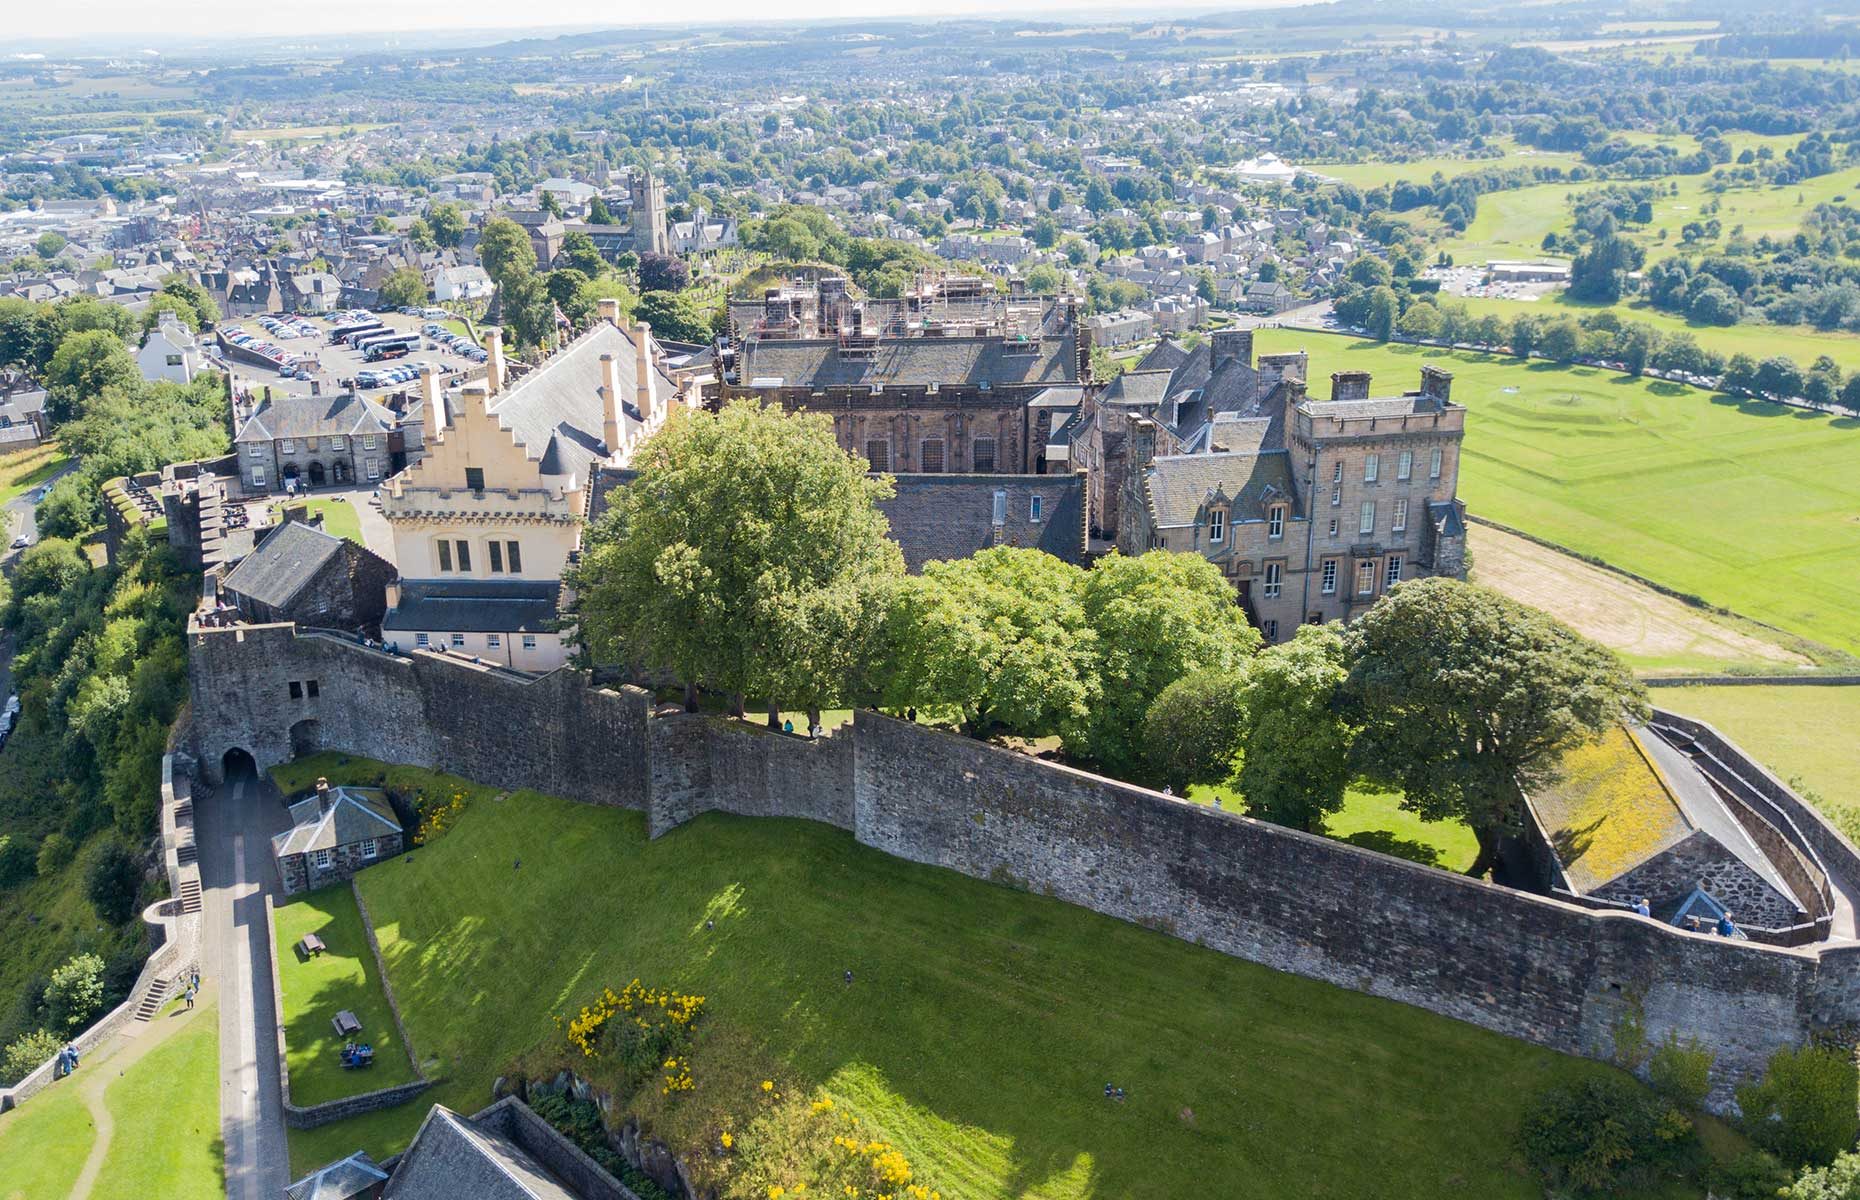 Stirling and it's castle, Scotland (Image: Craig Duncanson/Shutterstock)